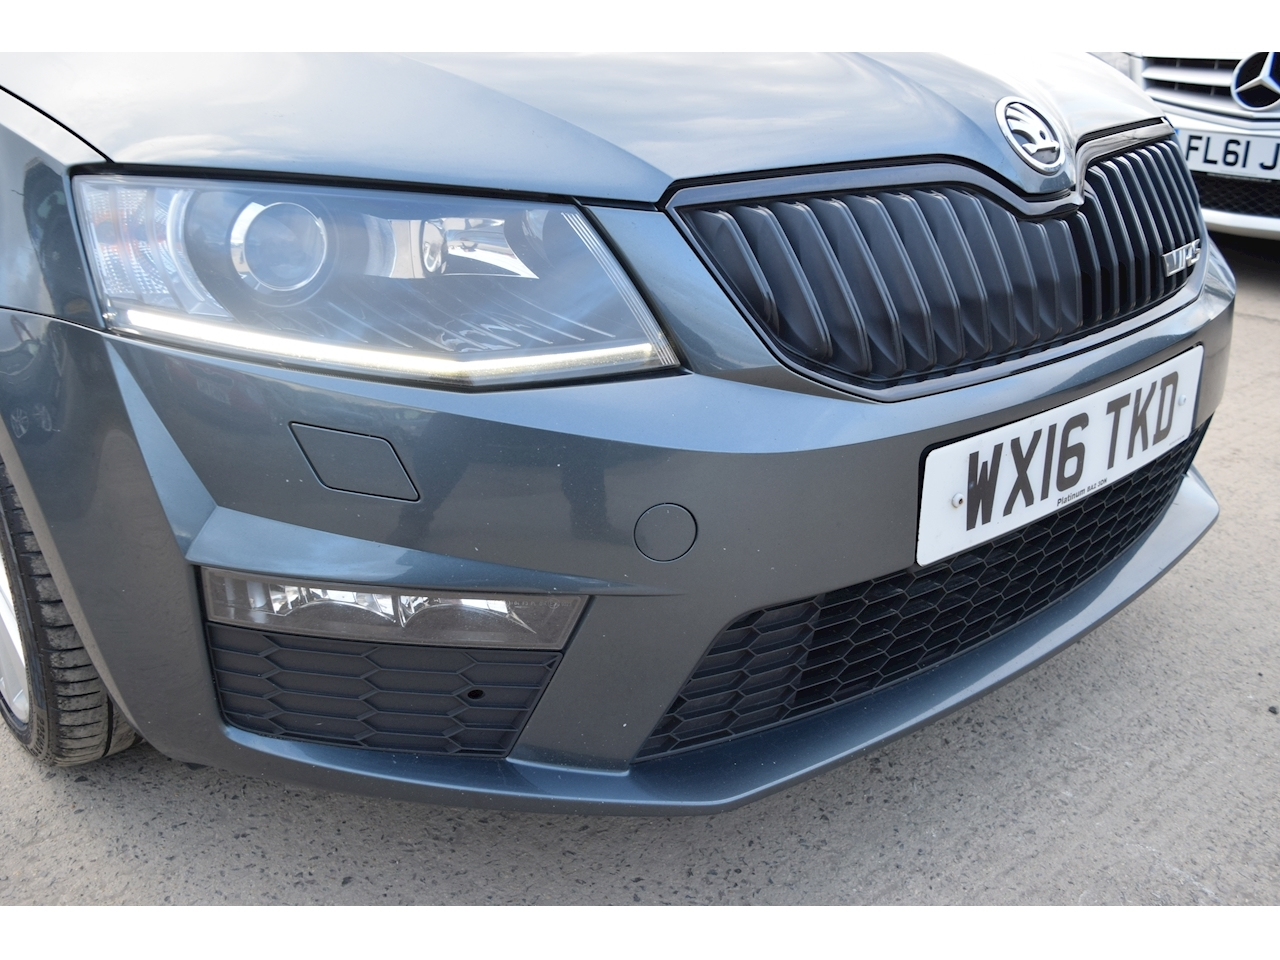 Skoda Octavia Vrs Tdi Estate 2.0 Manual Diesel